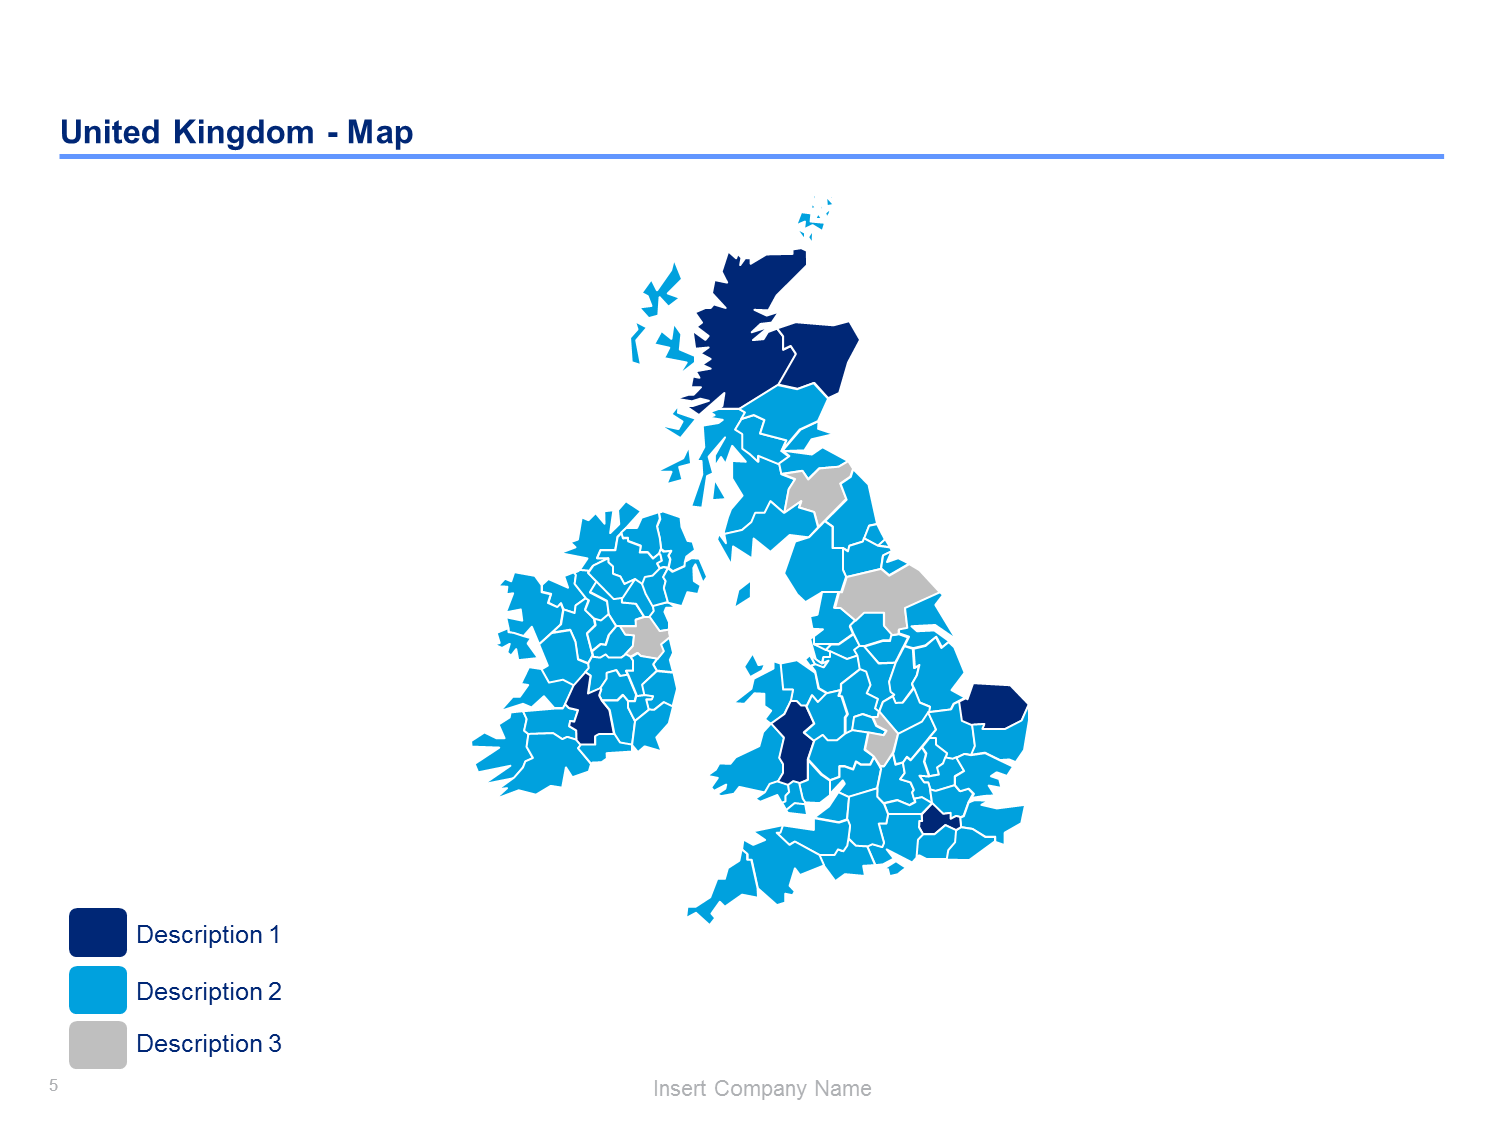 Map Of Uk For Powerpoint.Uk Maps Editable Uk Maps In Powerpoint Slidebooks Com Map Map